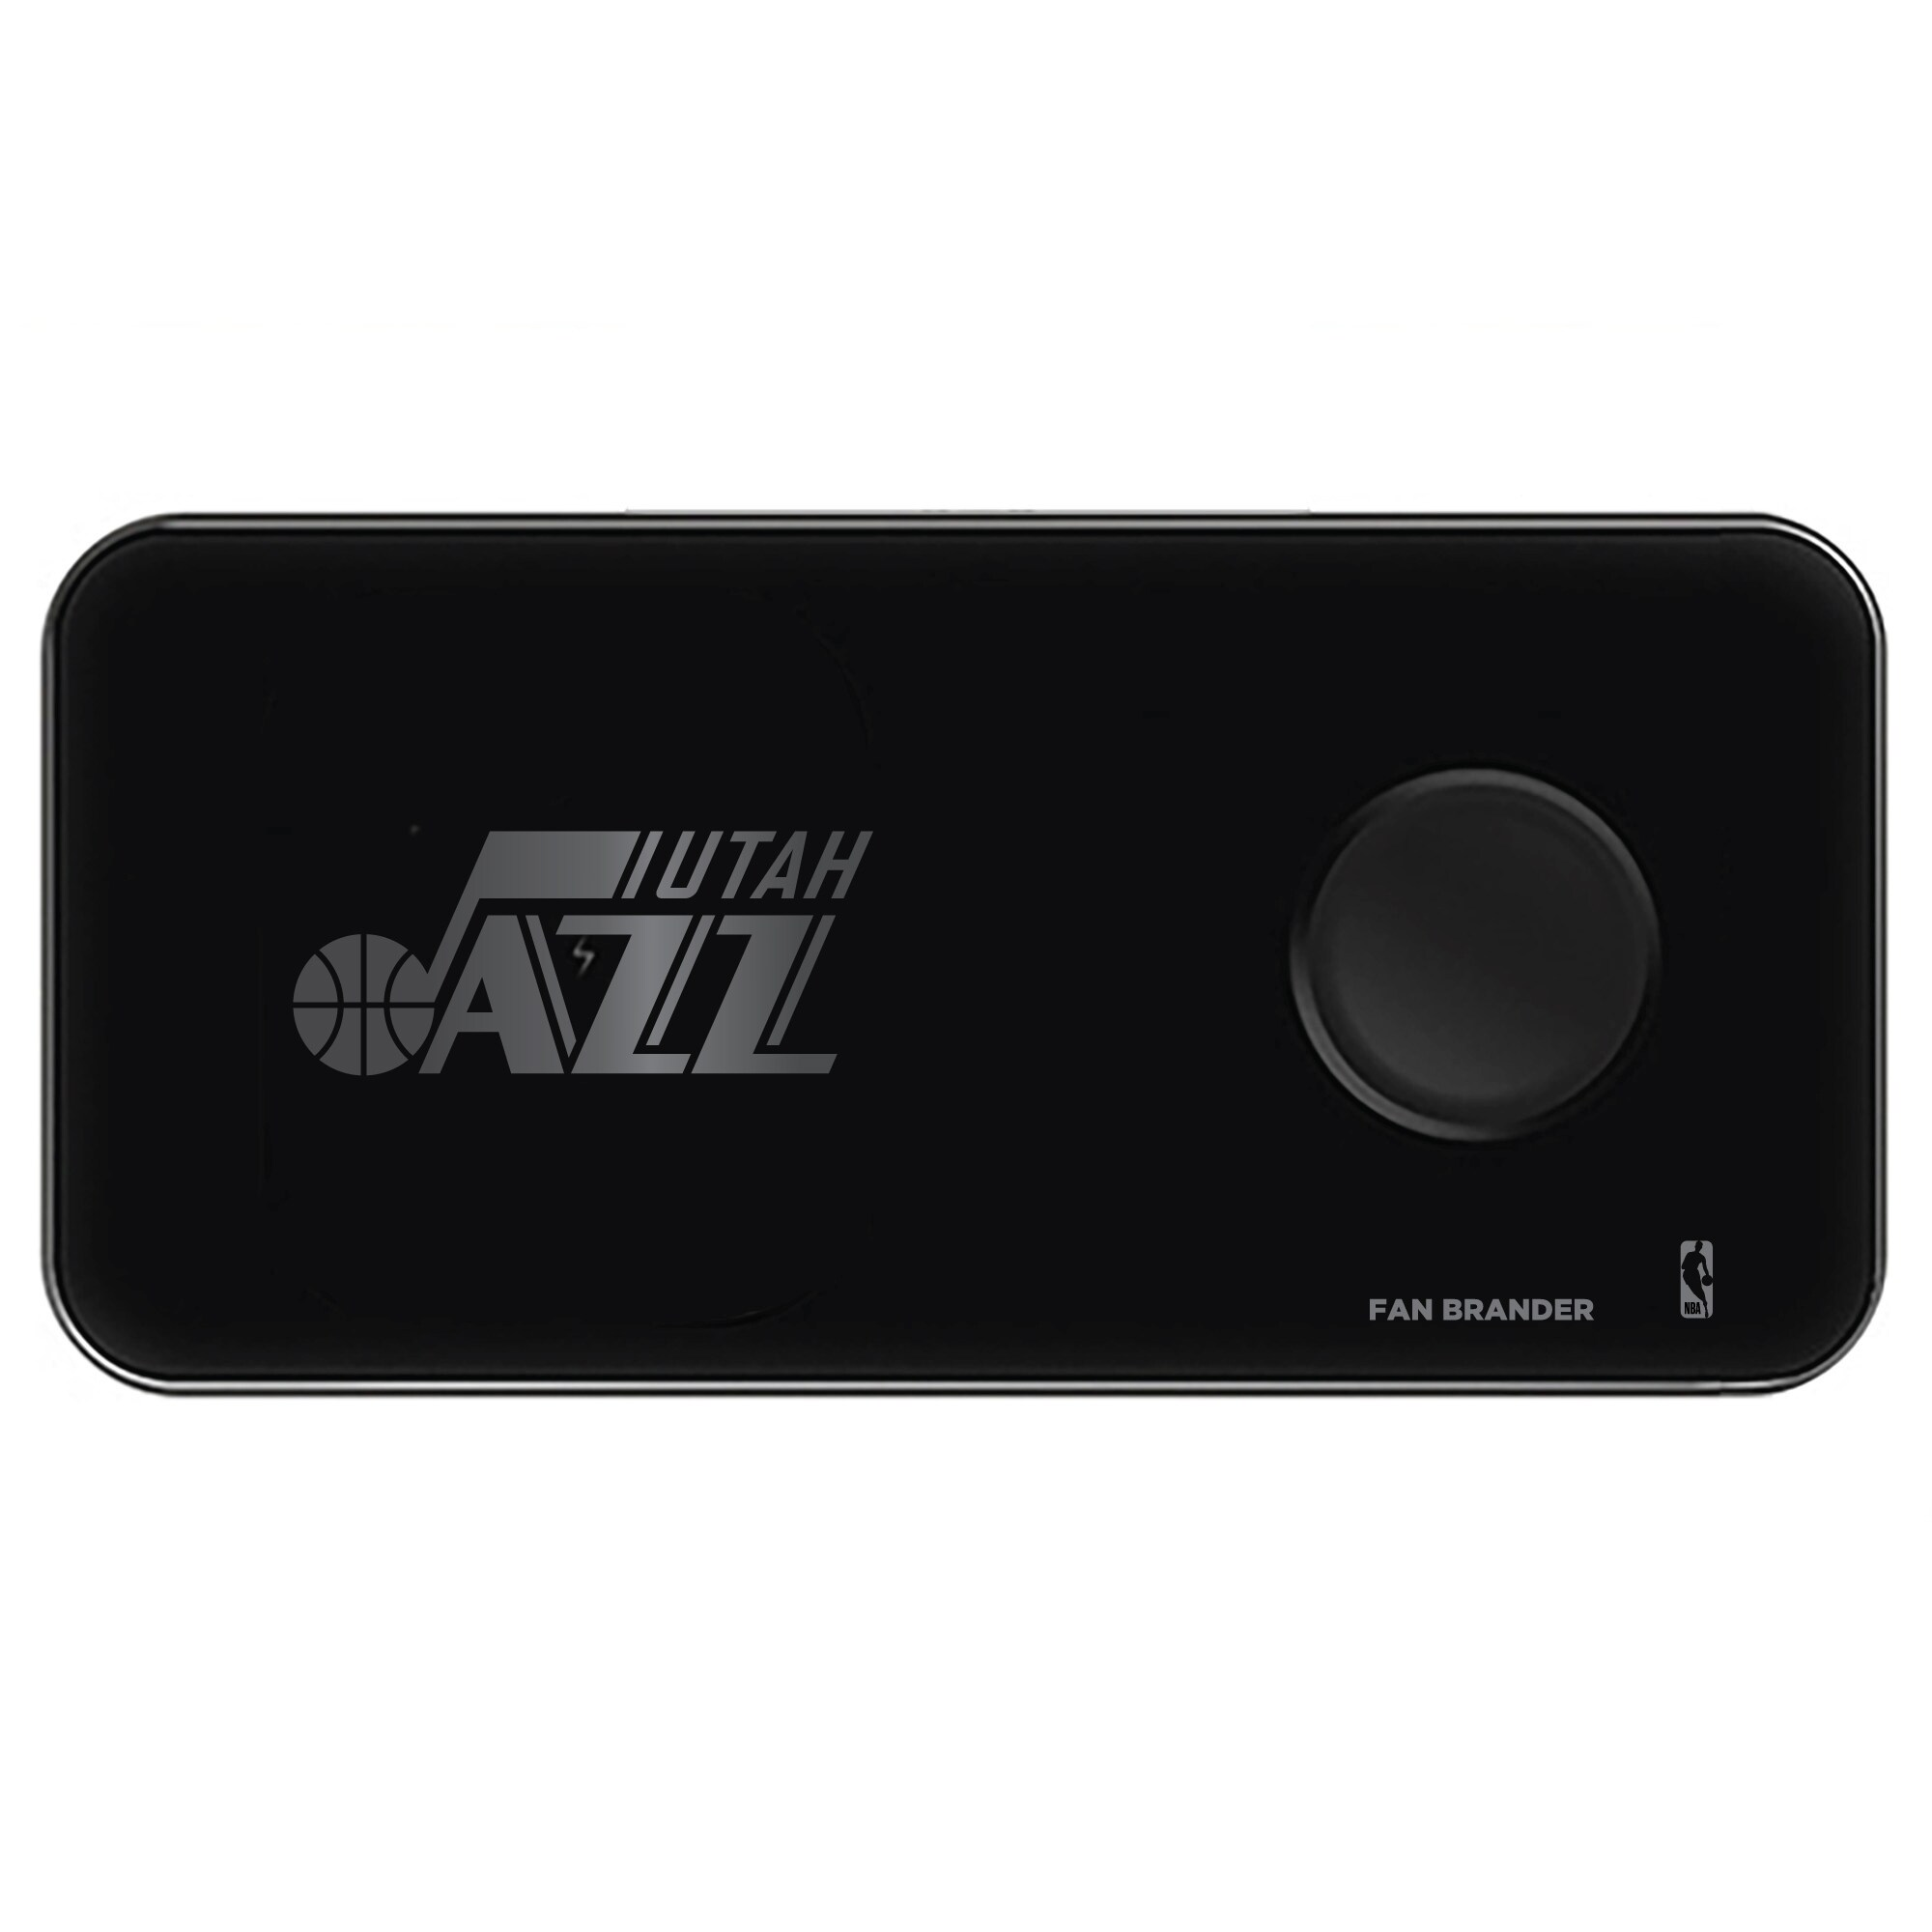 Utah Jazz 3-in-1 Glass Wireless Charge Pad - Black